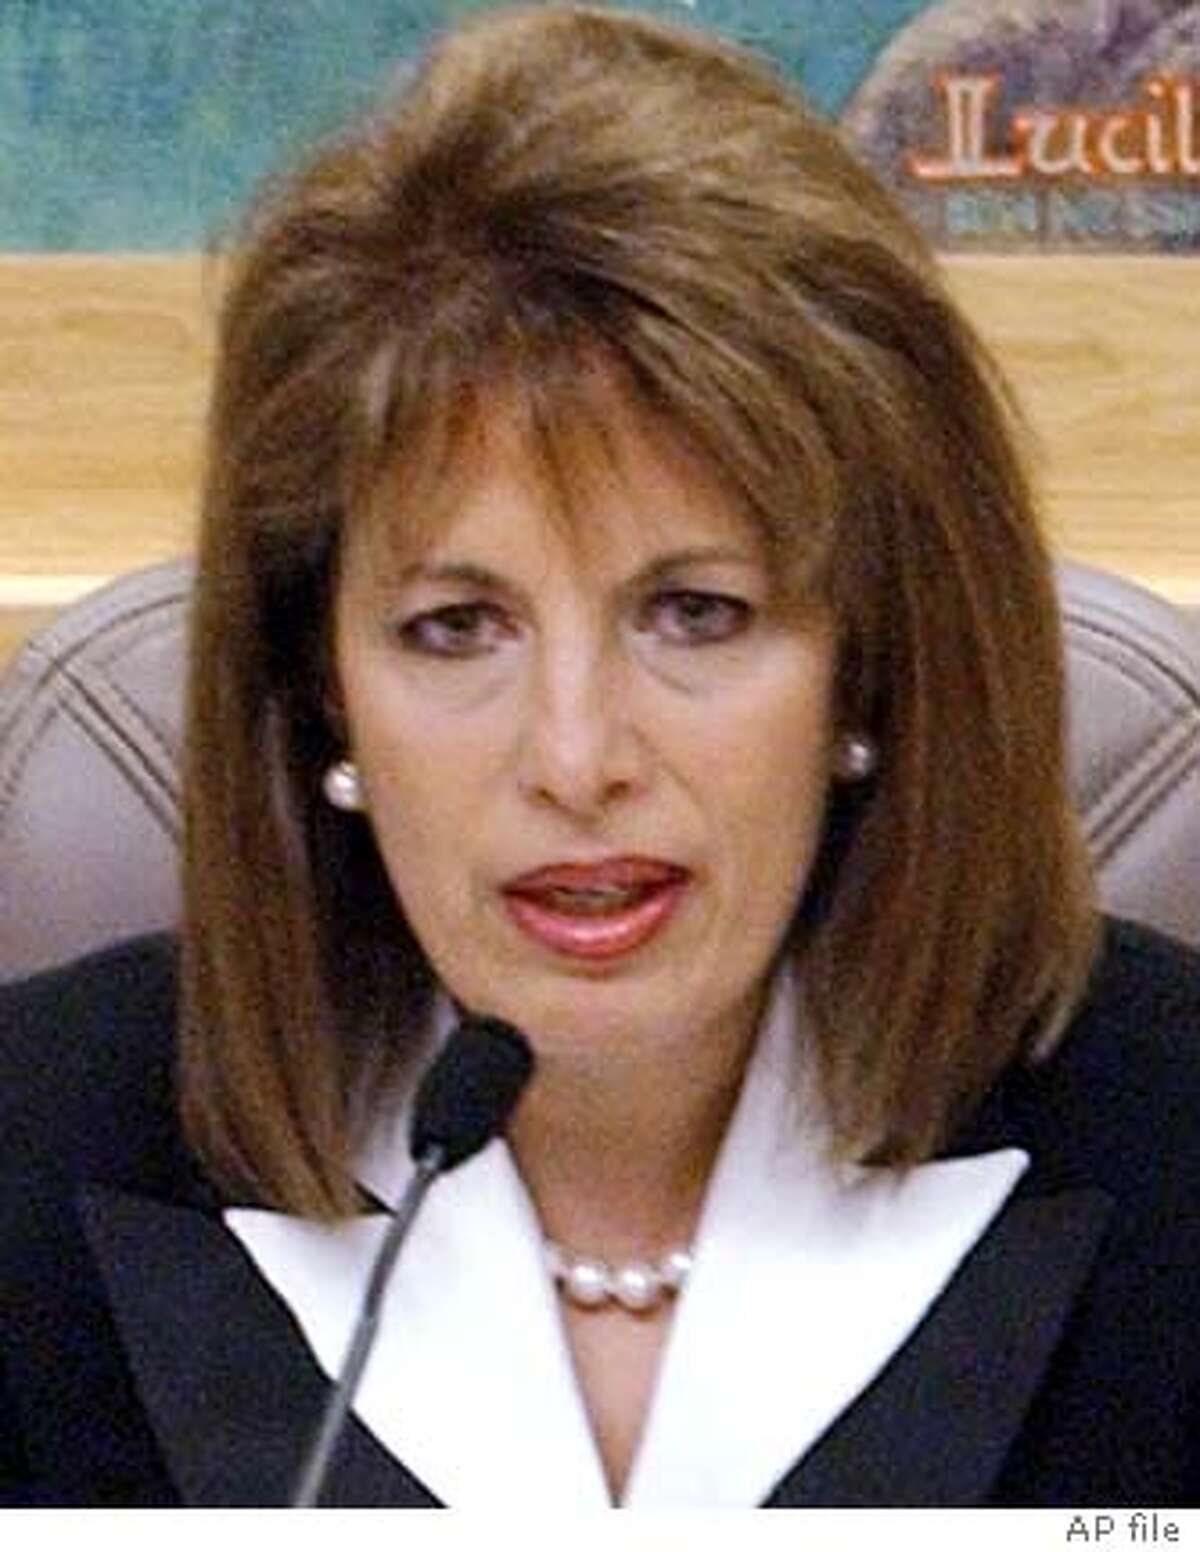 State Sen. Jackie Speier, D-Daly City, right, questions Mike Jimenez, head of the California Correctional Peace Officers Association, seated back to camera, during a hearing looking into alleged wrongdoing involving staff at Folsom Prison, at the Capitol in Sacramento, Calif., Tuesday, Jan. 20, 2004. At left is state Sen. Gloria Romero.(AP Photo/Rich Pedroncelli) also ran 03/29/2004 Gloria Romero and Mark Leno are presenting bills that would open prison doors to journalists. ProductNameChronicle State Sen. Gloria Romero said the Youth Authority must make wholesale changes. ProductNameChronicle State Sen. Jackie Speier of Hillsborough (right) questions Mike Jimenez, head of the prison guards union, at a January hearing. Ran on: 01-25-2005 State Sen. Gloria Romero wants urban living units within 50 miles of inmates homes.